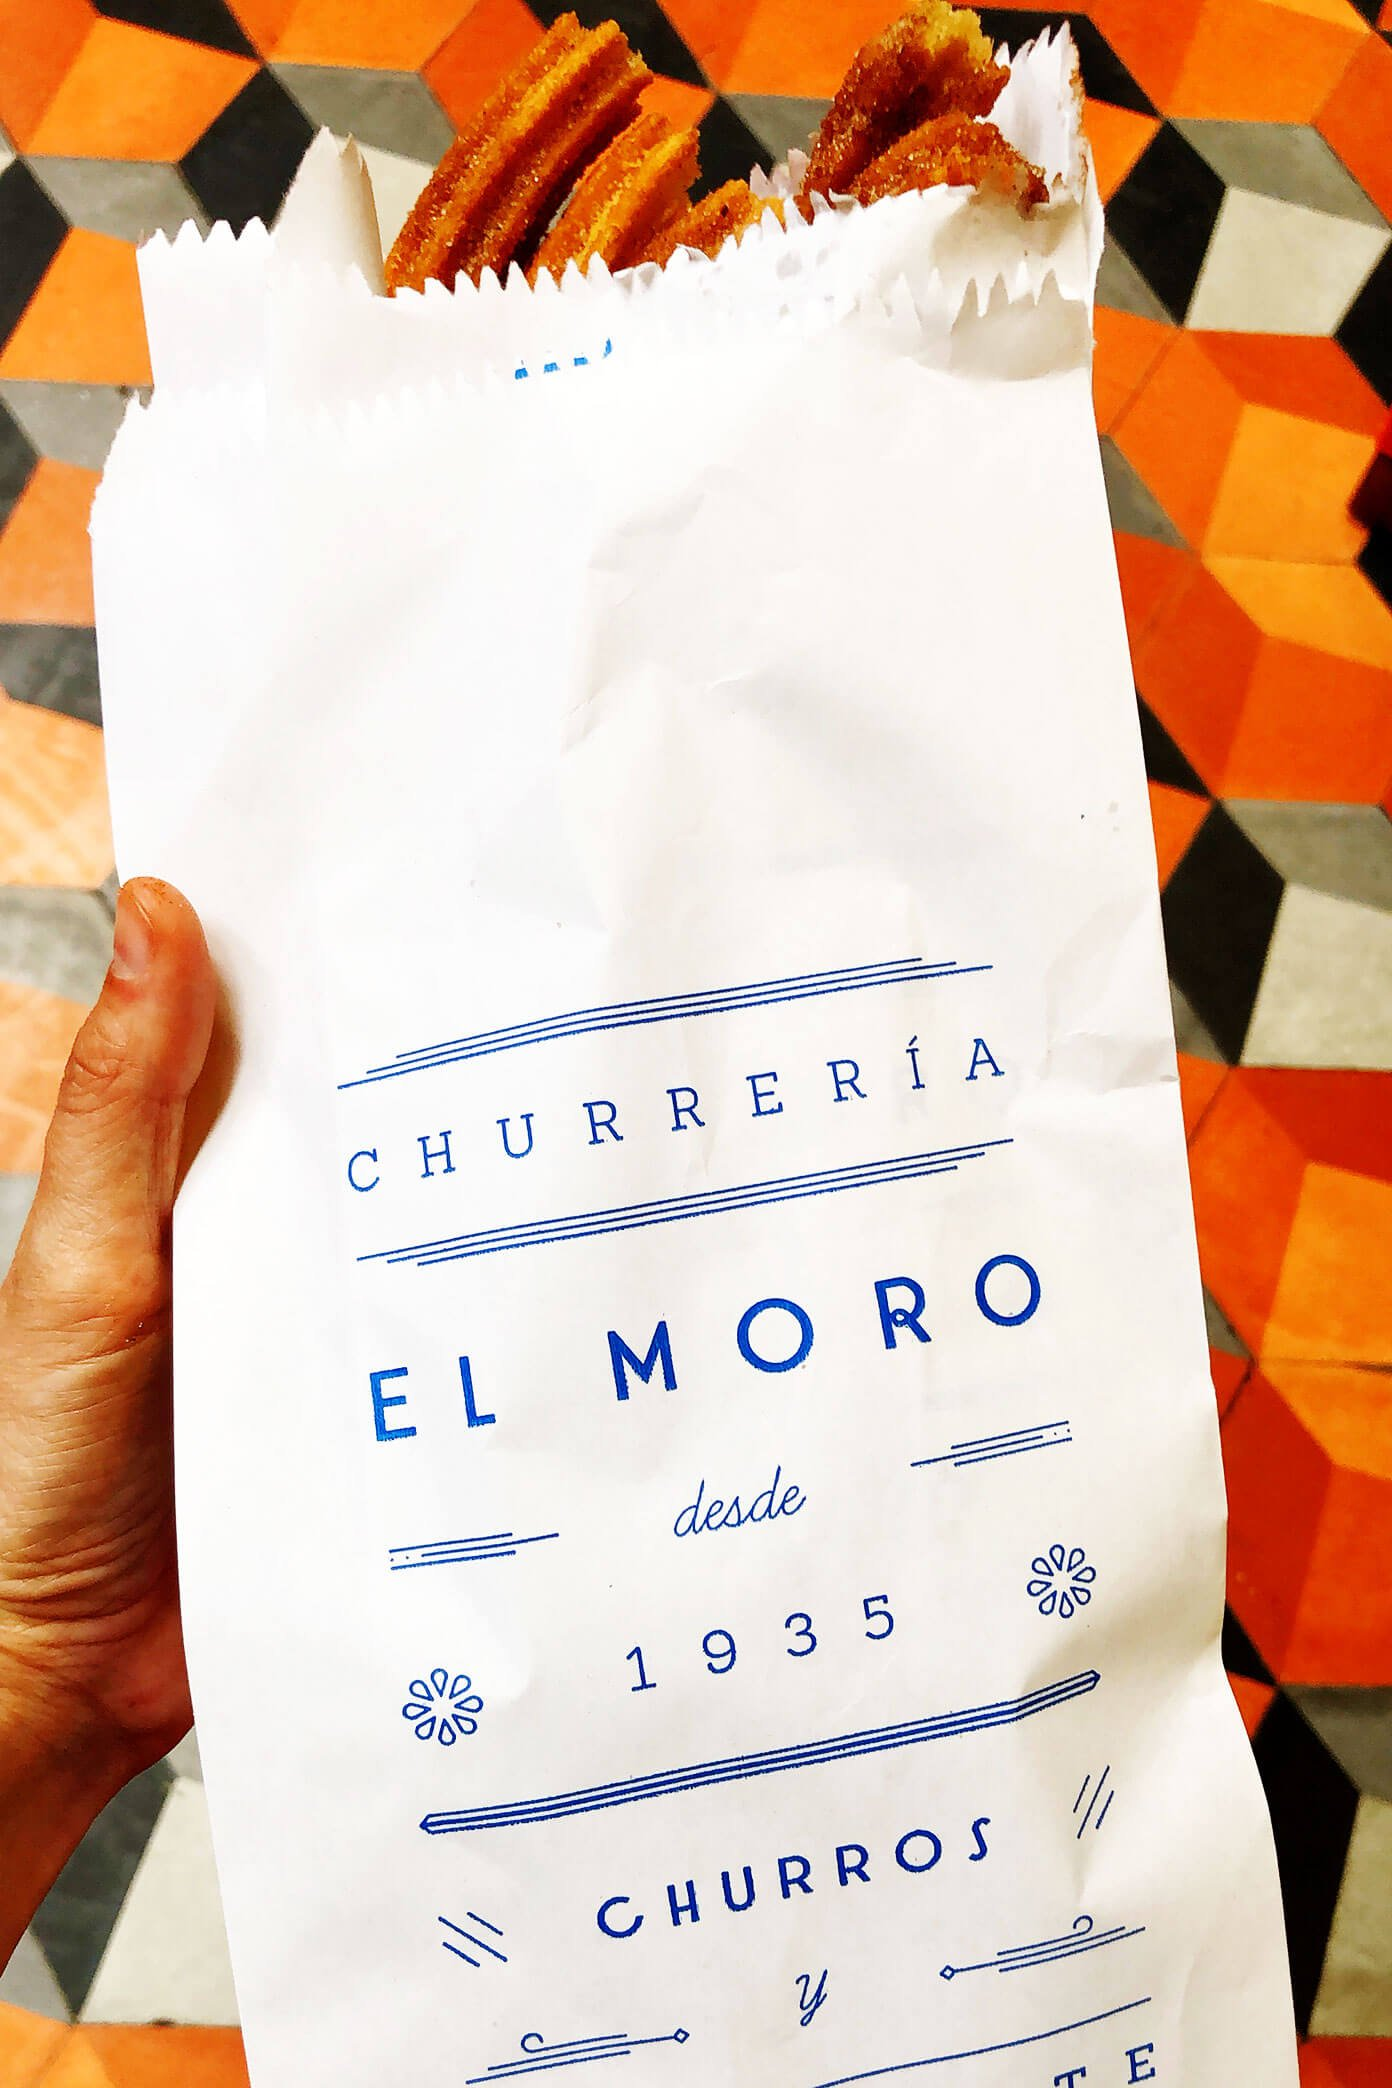 El Moro Churros | Ali's Guide To Mexico City